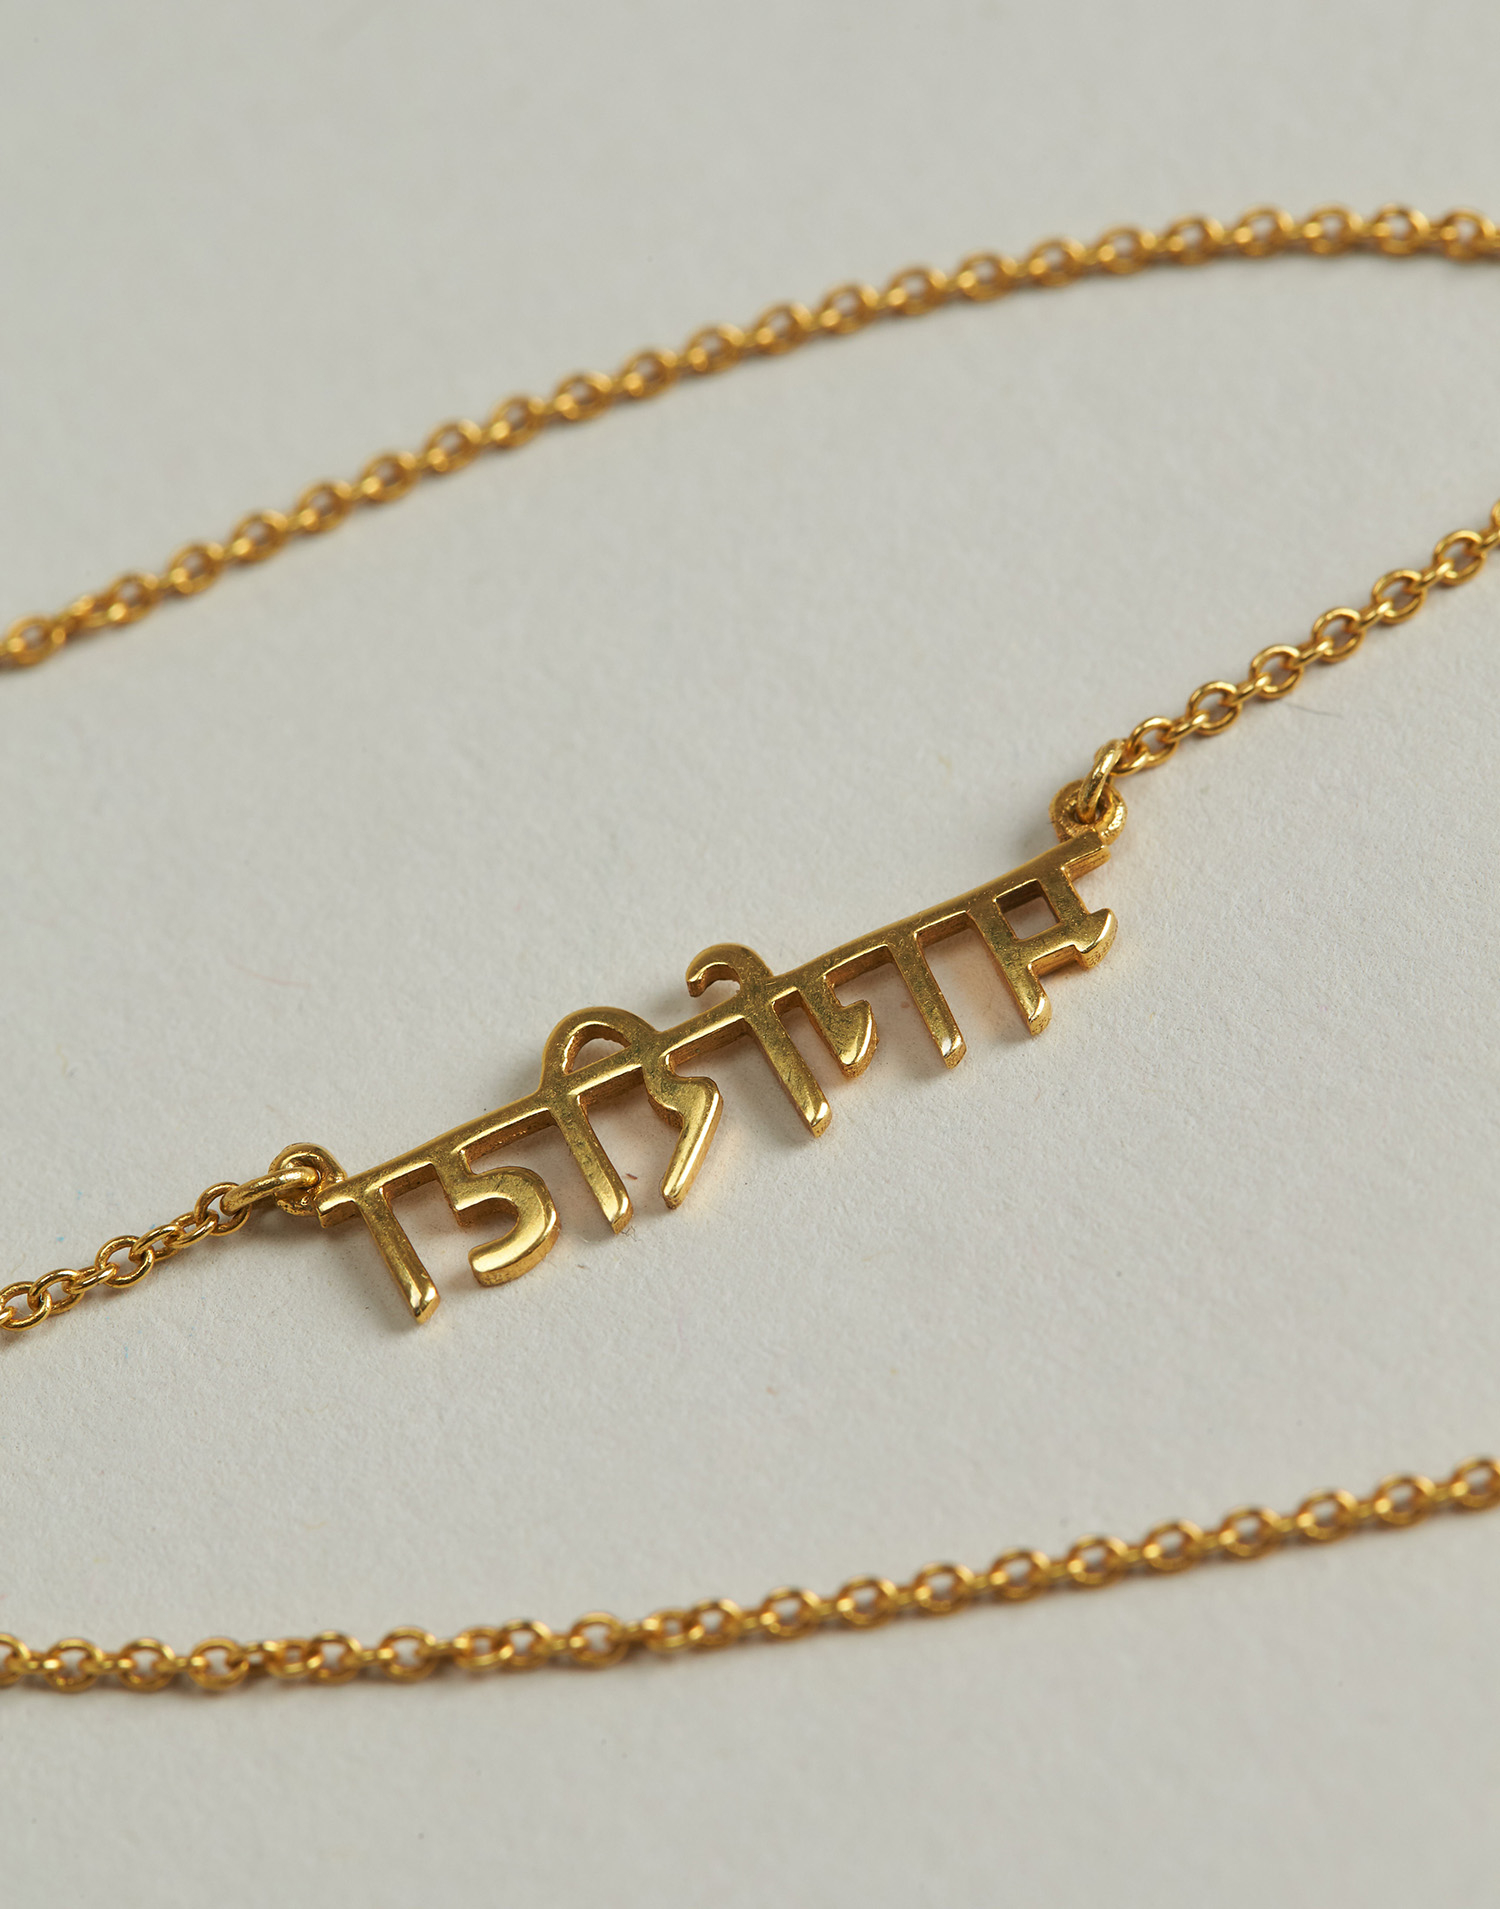 Gold plated hindi necklace